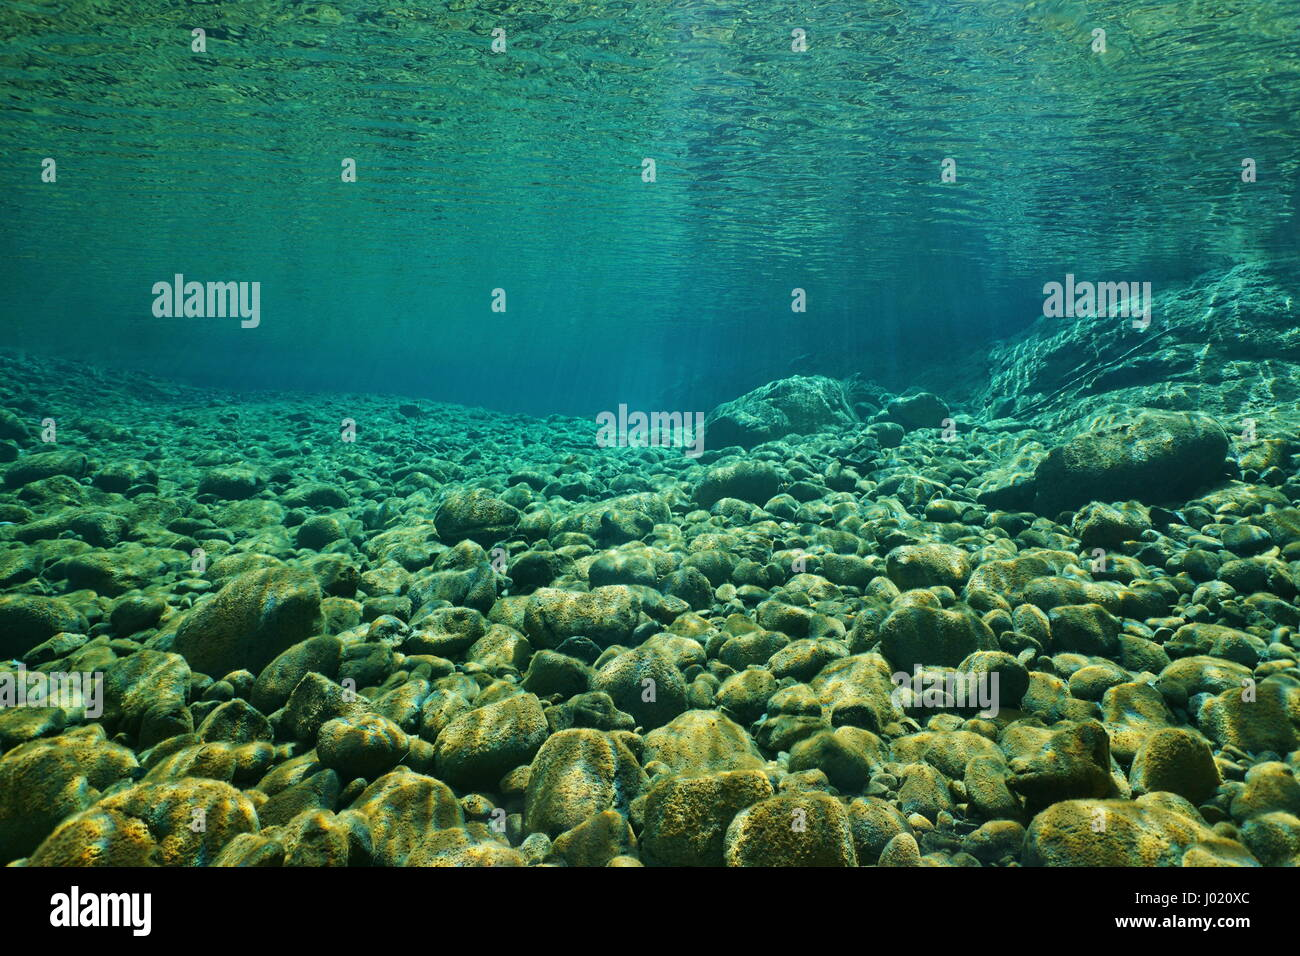 River pebbles underwater on the riverbed with clear freshwater and sunlight through water surface, natural scene, - Stock Image